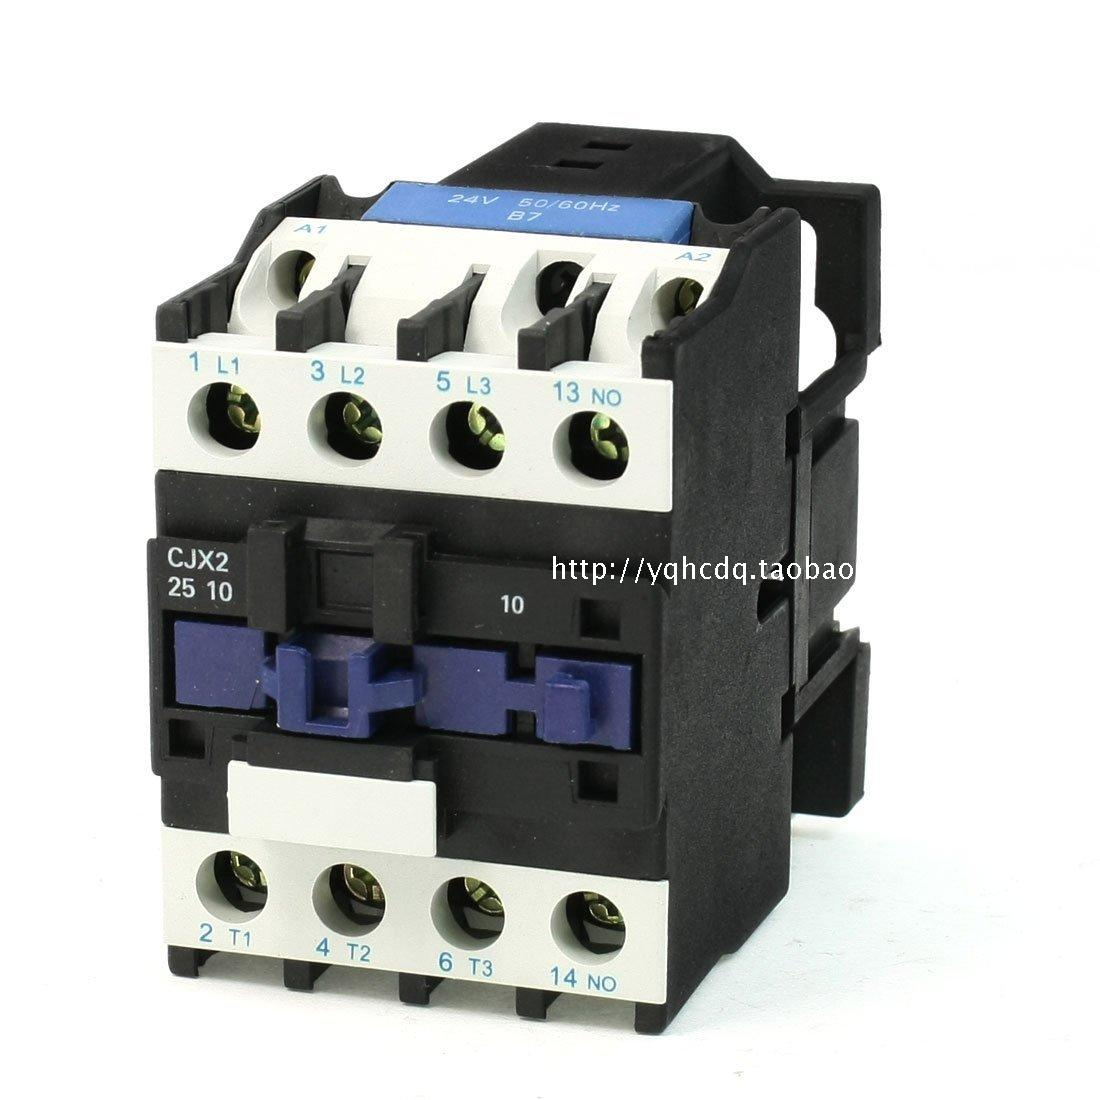 Shanghai people's AC contactor 220V/380V 25A CJX2-2510 AC contactor silver point cjx2 lc1 1210 25a 220v 660v ac contactor black white